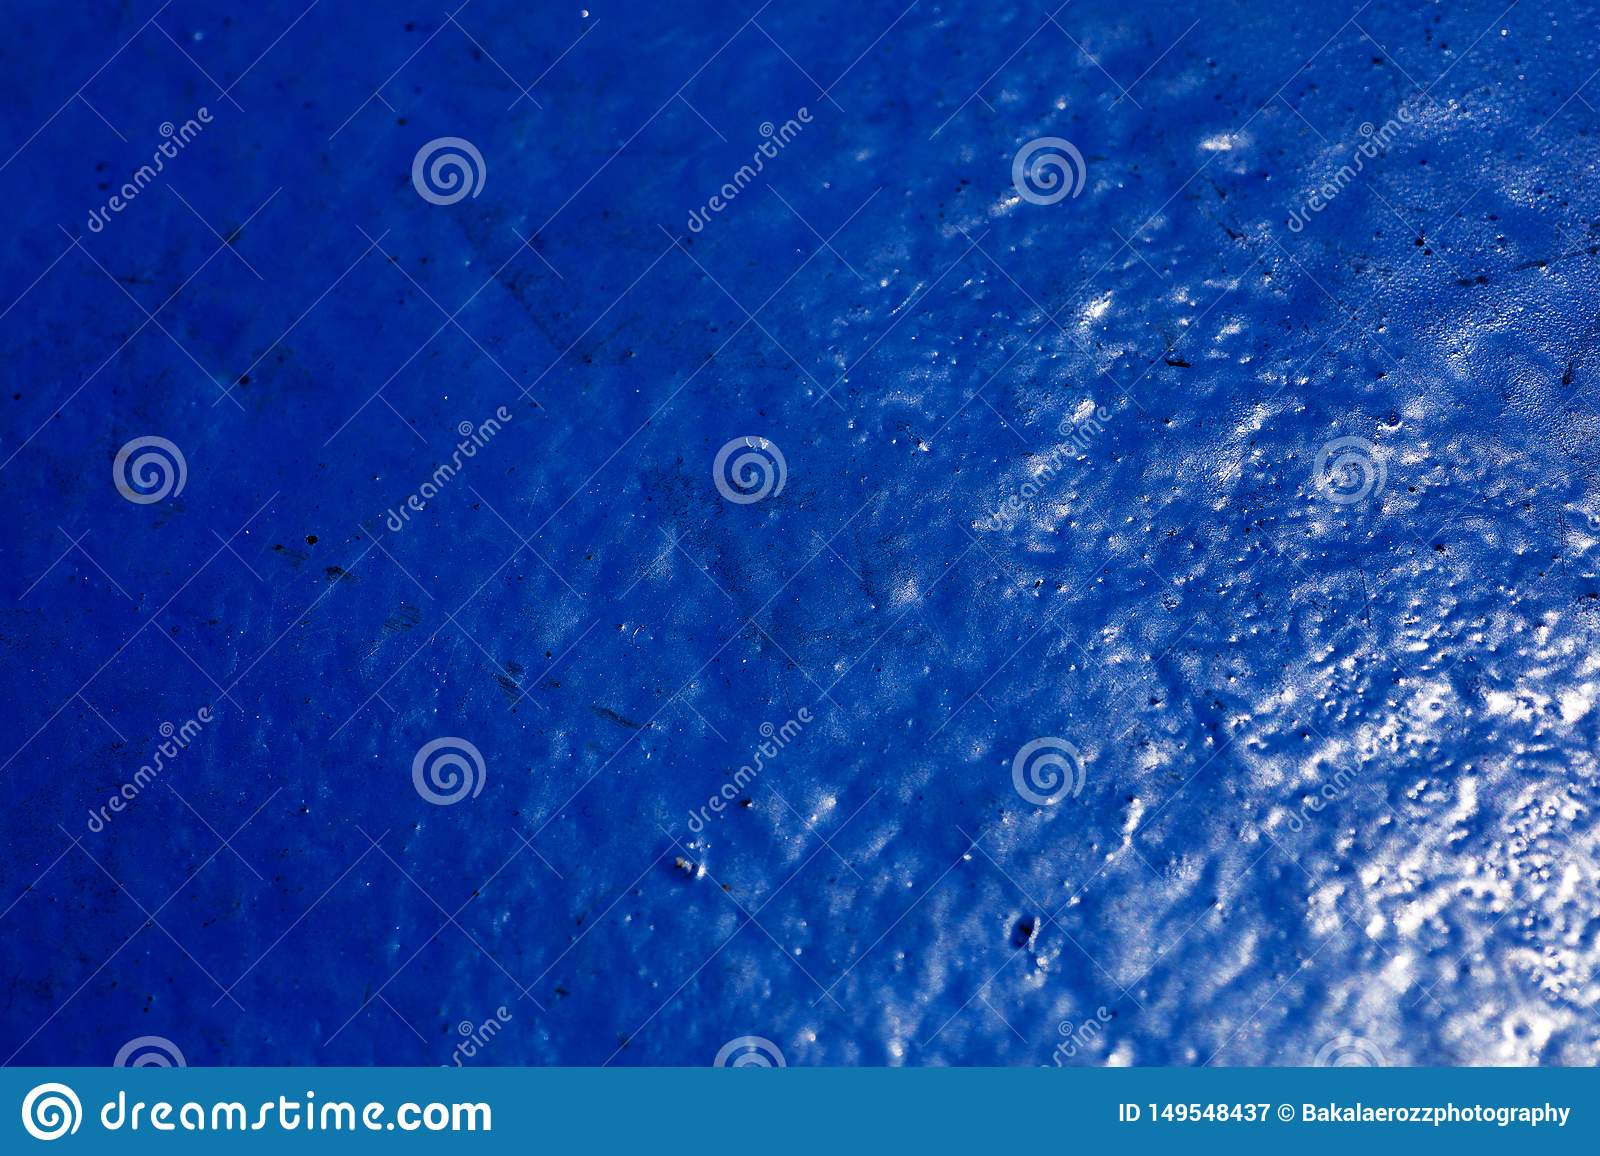 Ship deck with blue color abstract Dandelion macro background fine art in high quality prints products 50,6 Megapixels